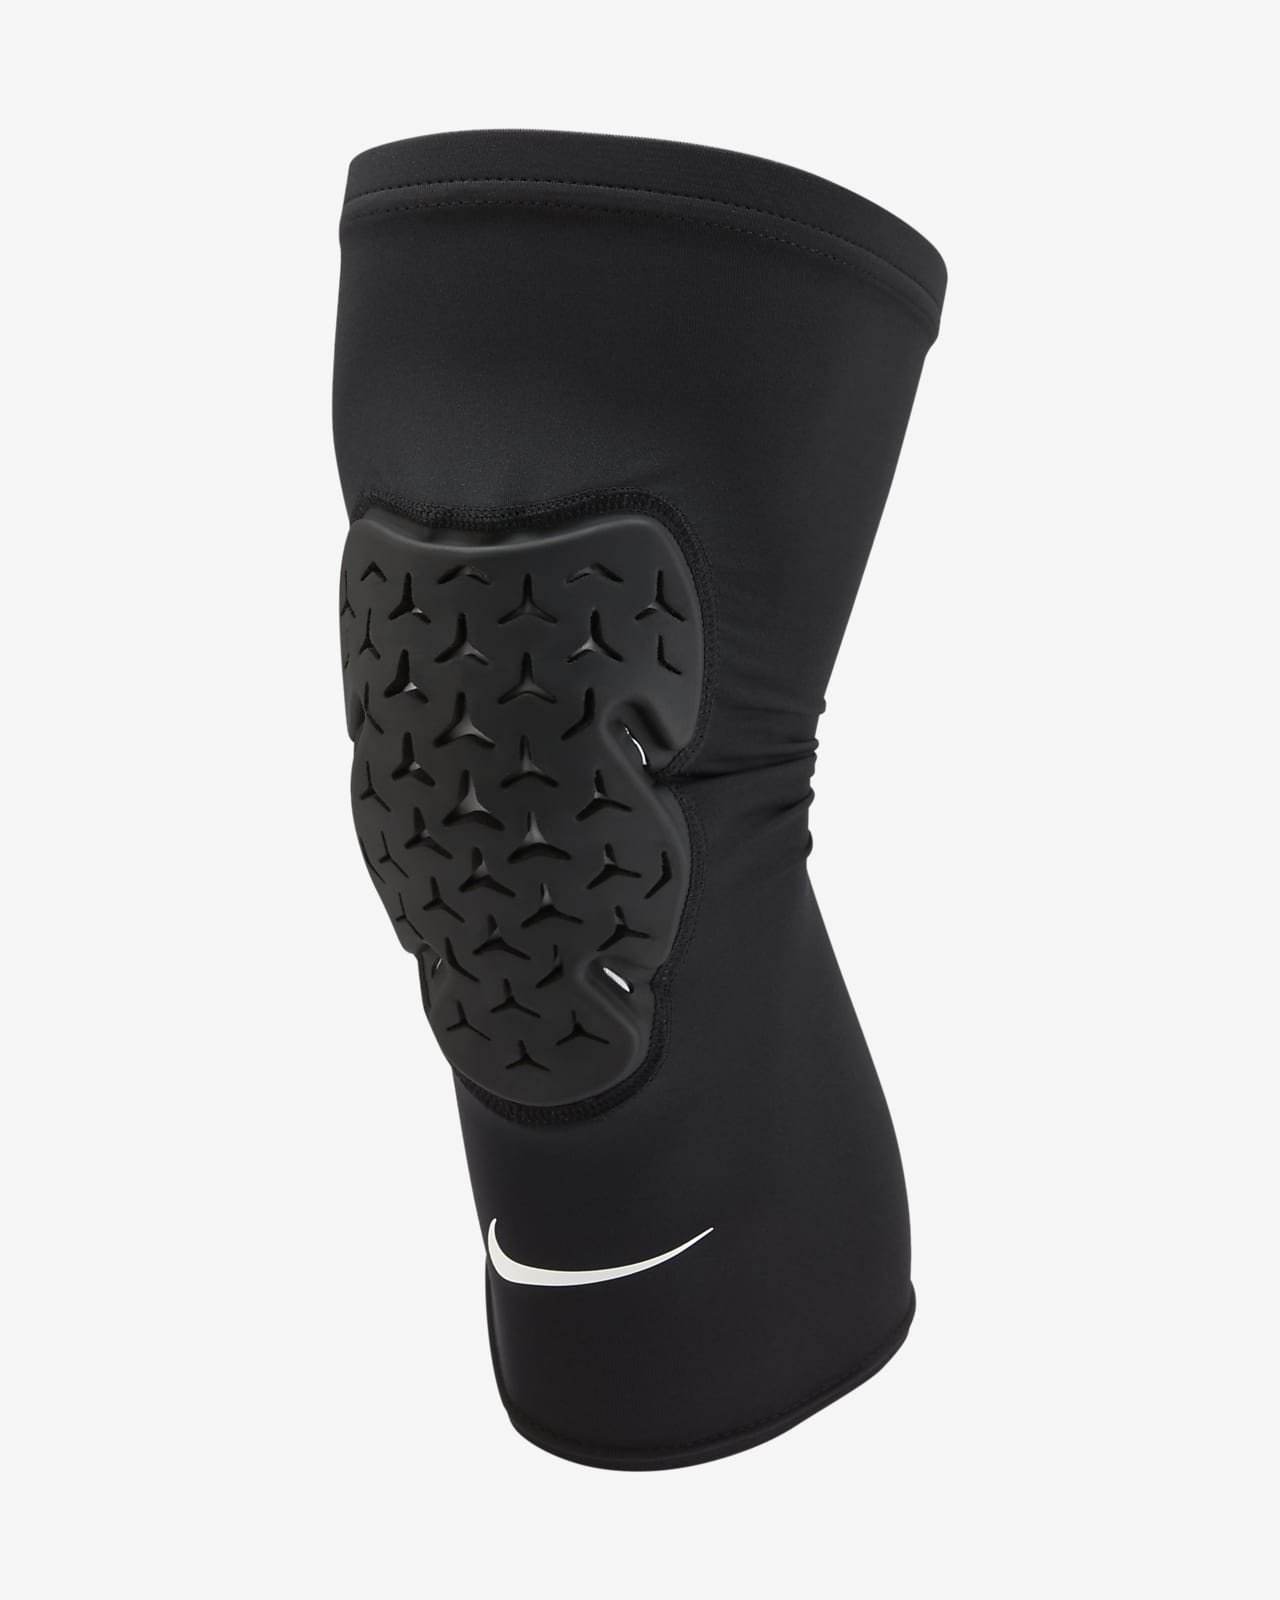 Nike Training Knee Sleeves